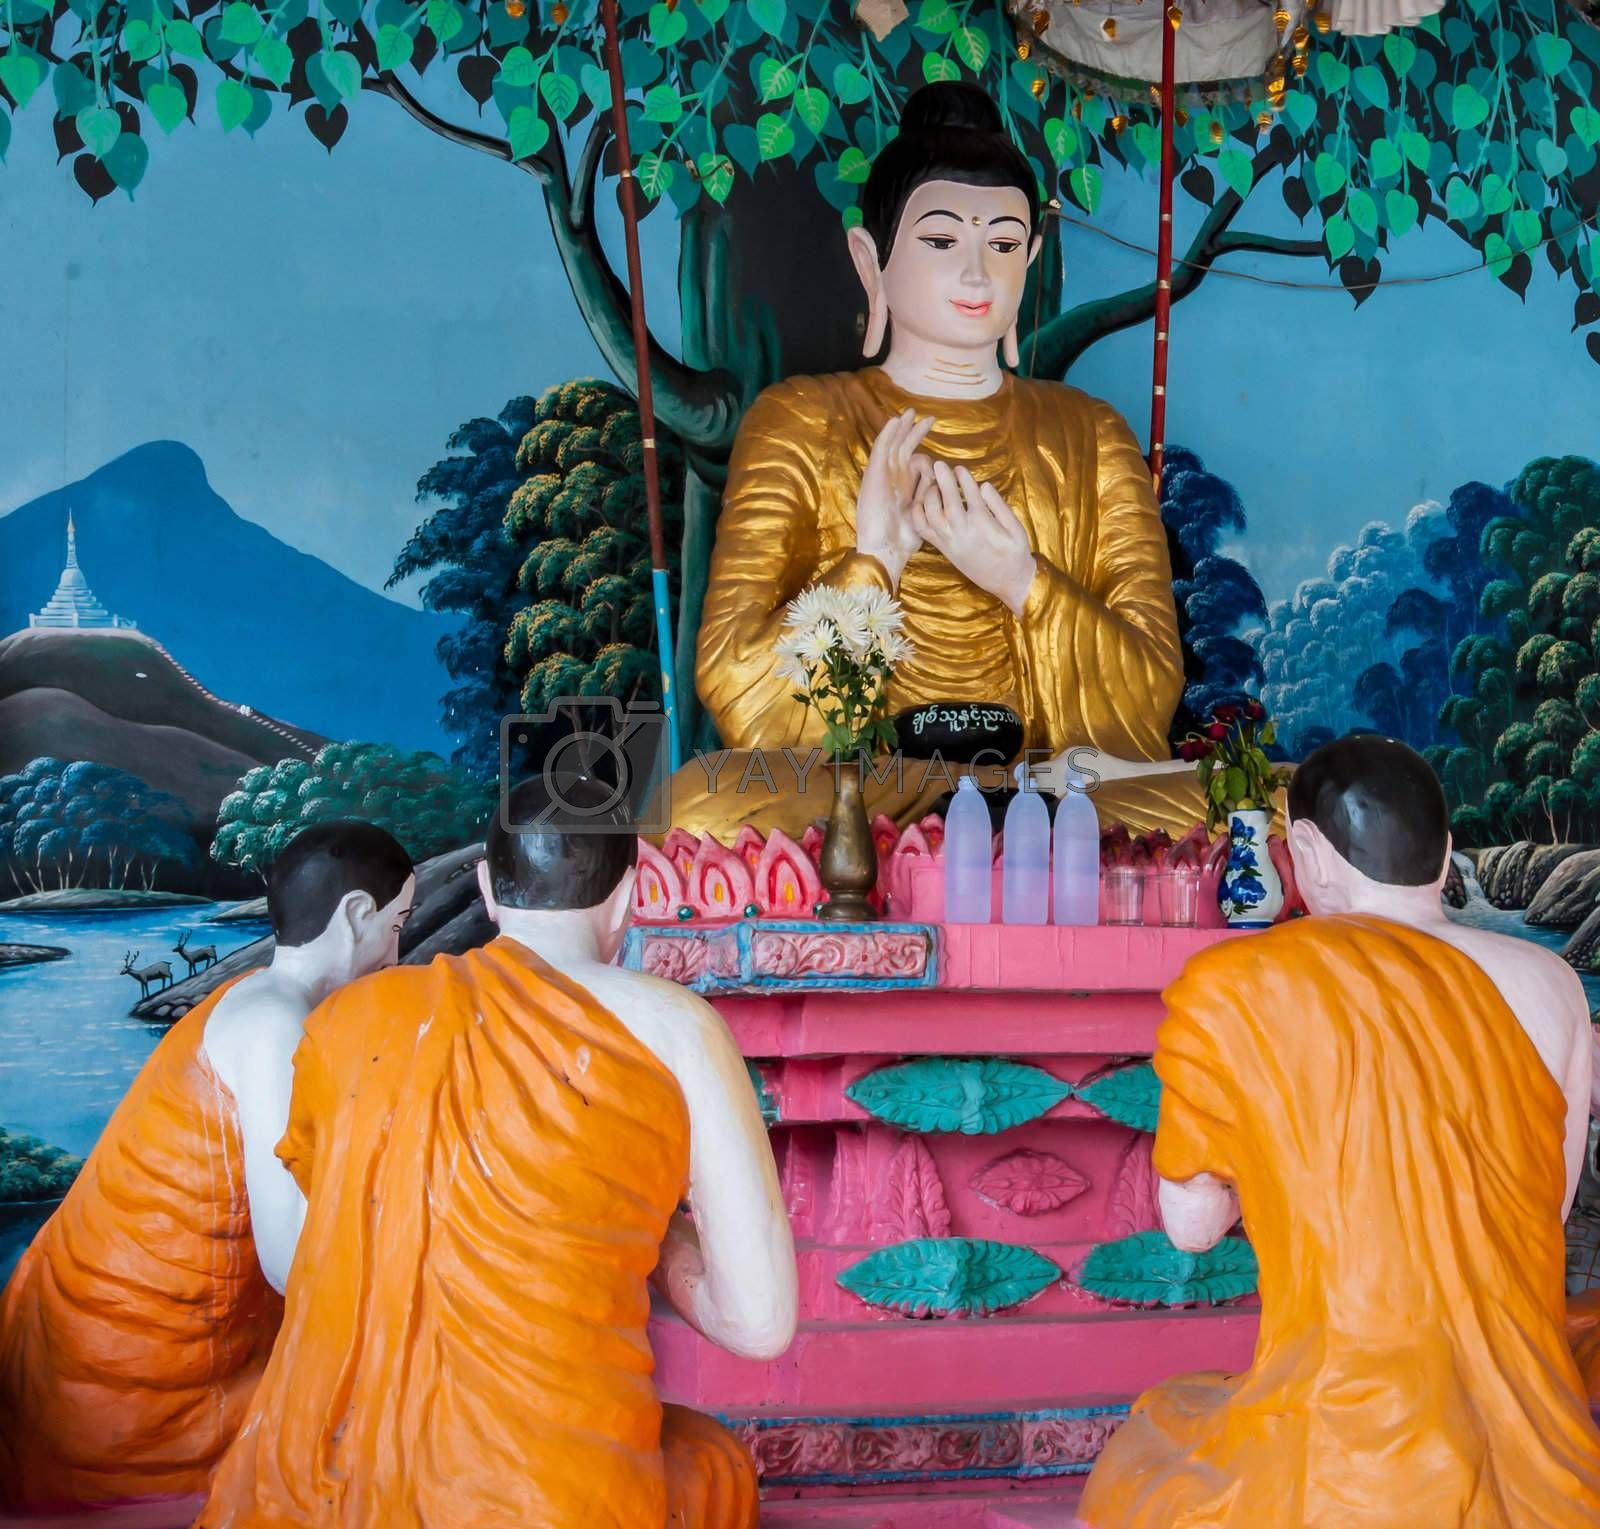 The statue of Buddha is giving a sermon to followers